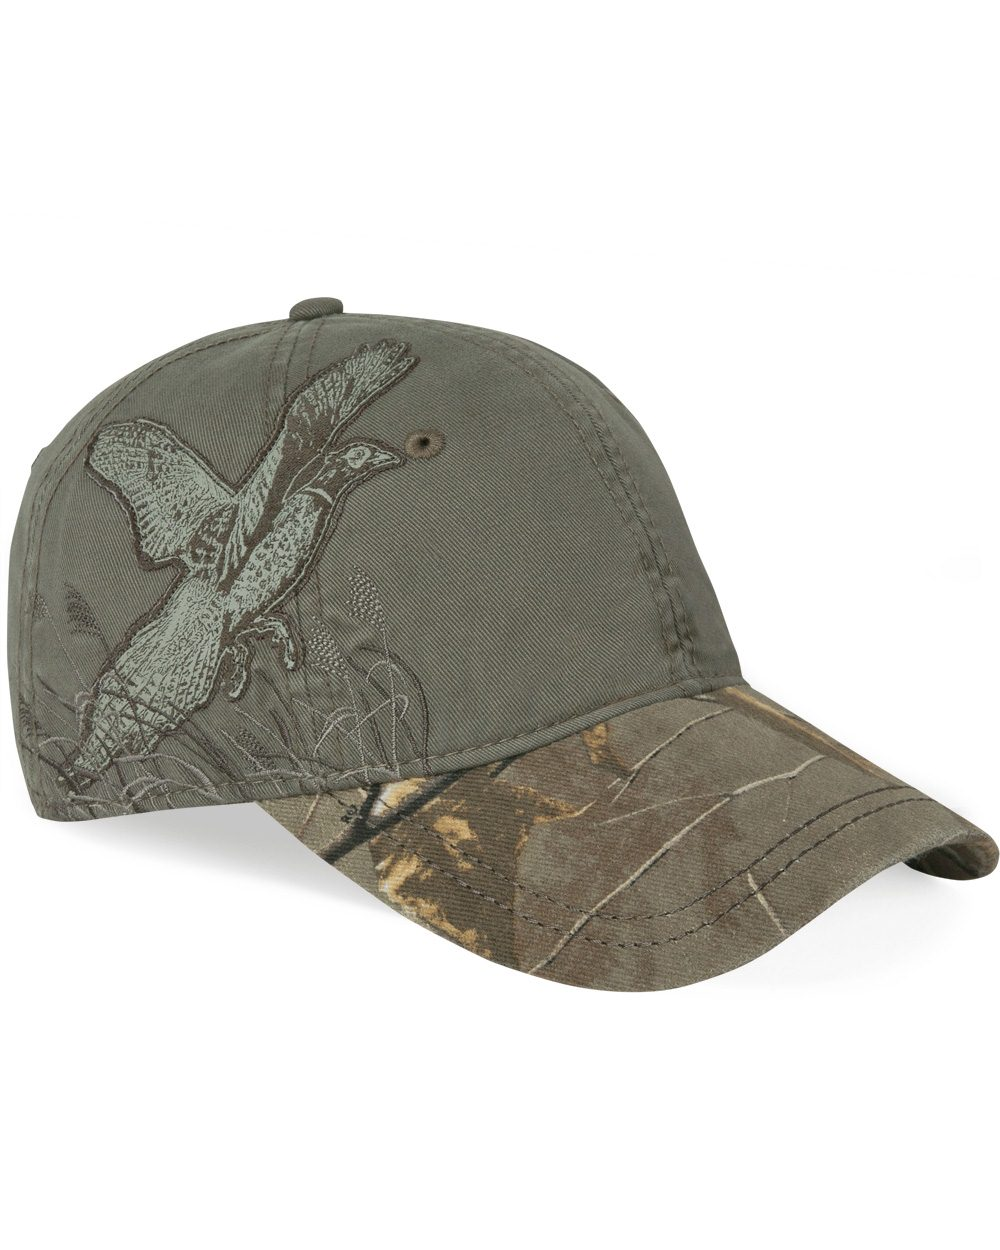 DRI DUCK Pheasant Applique Cap - 3313